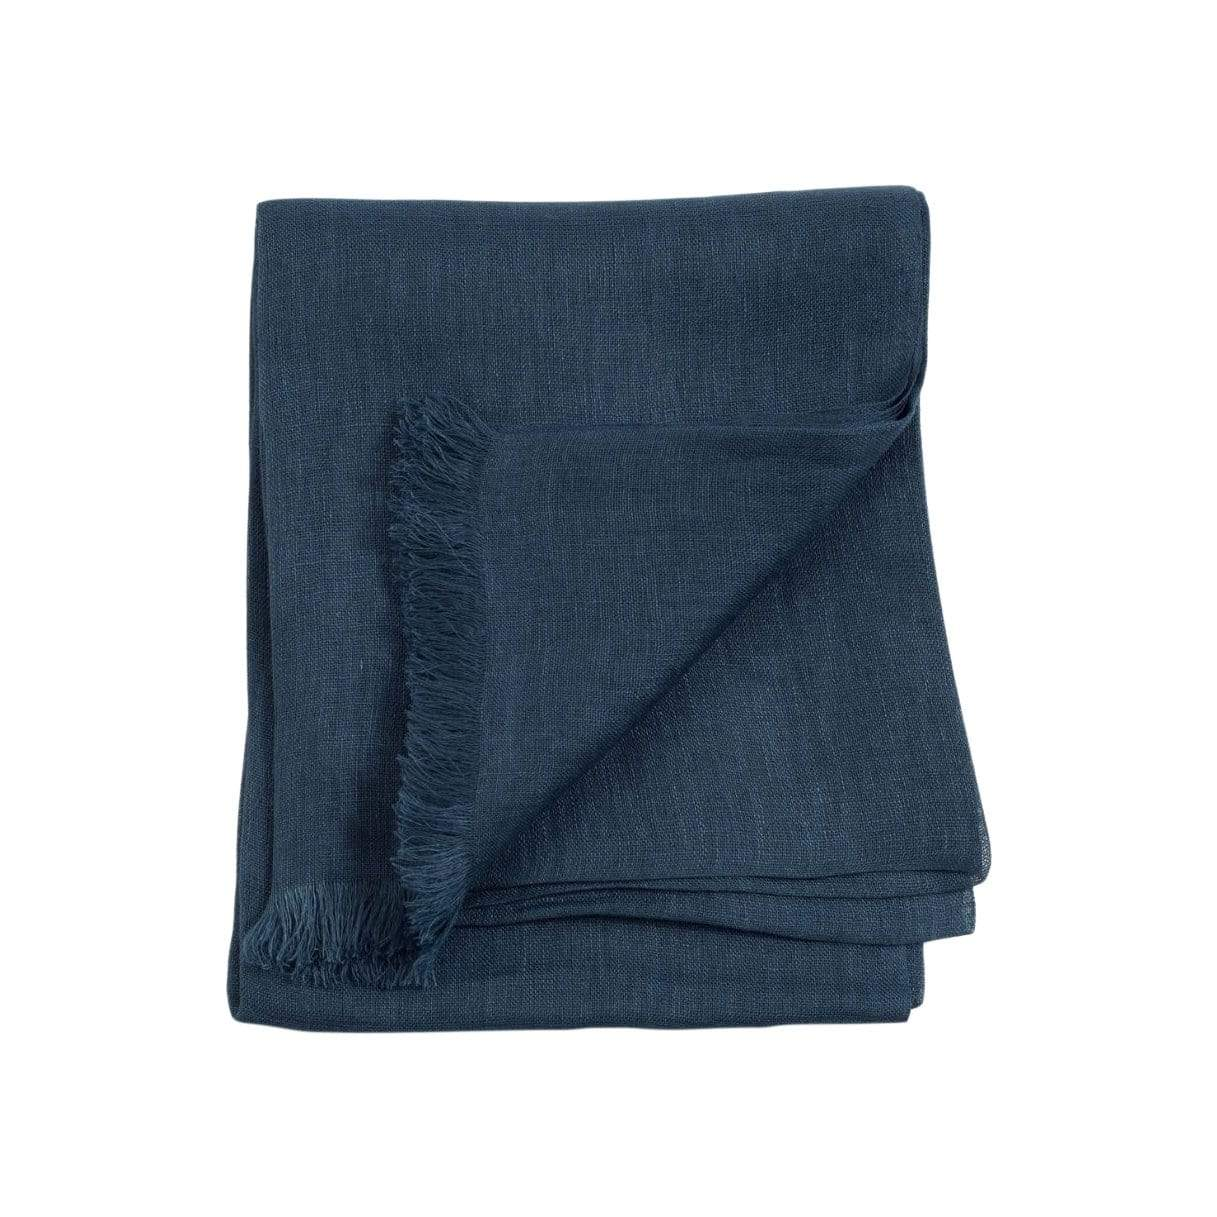 Studio Variously Hats + Scarves Midnight Blue Handwoven Linen Scarf